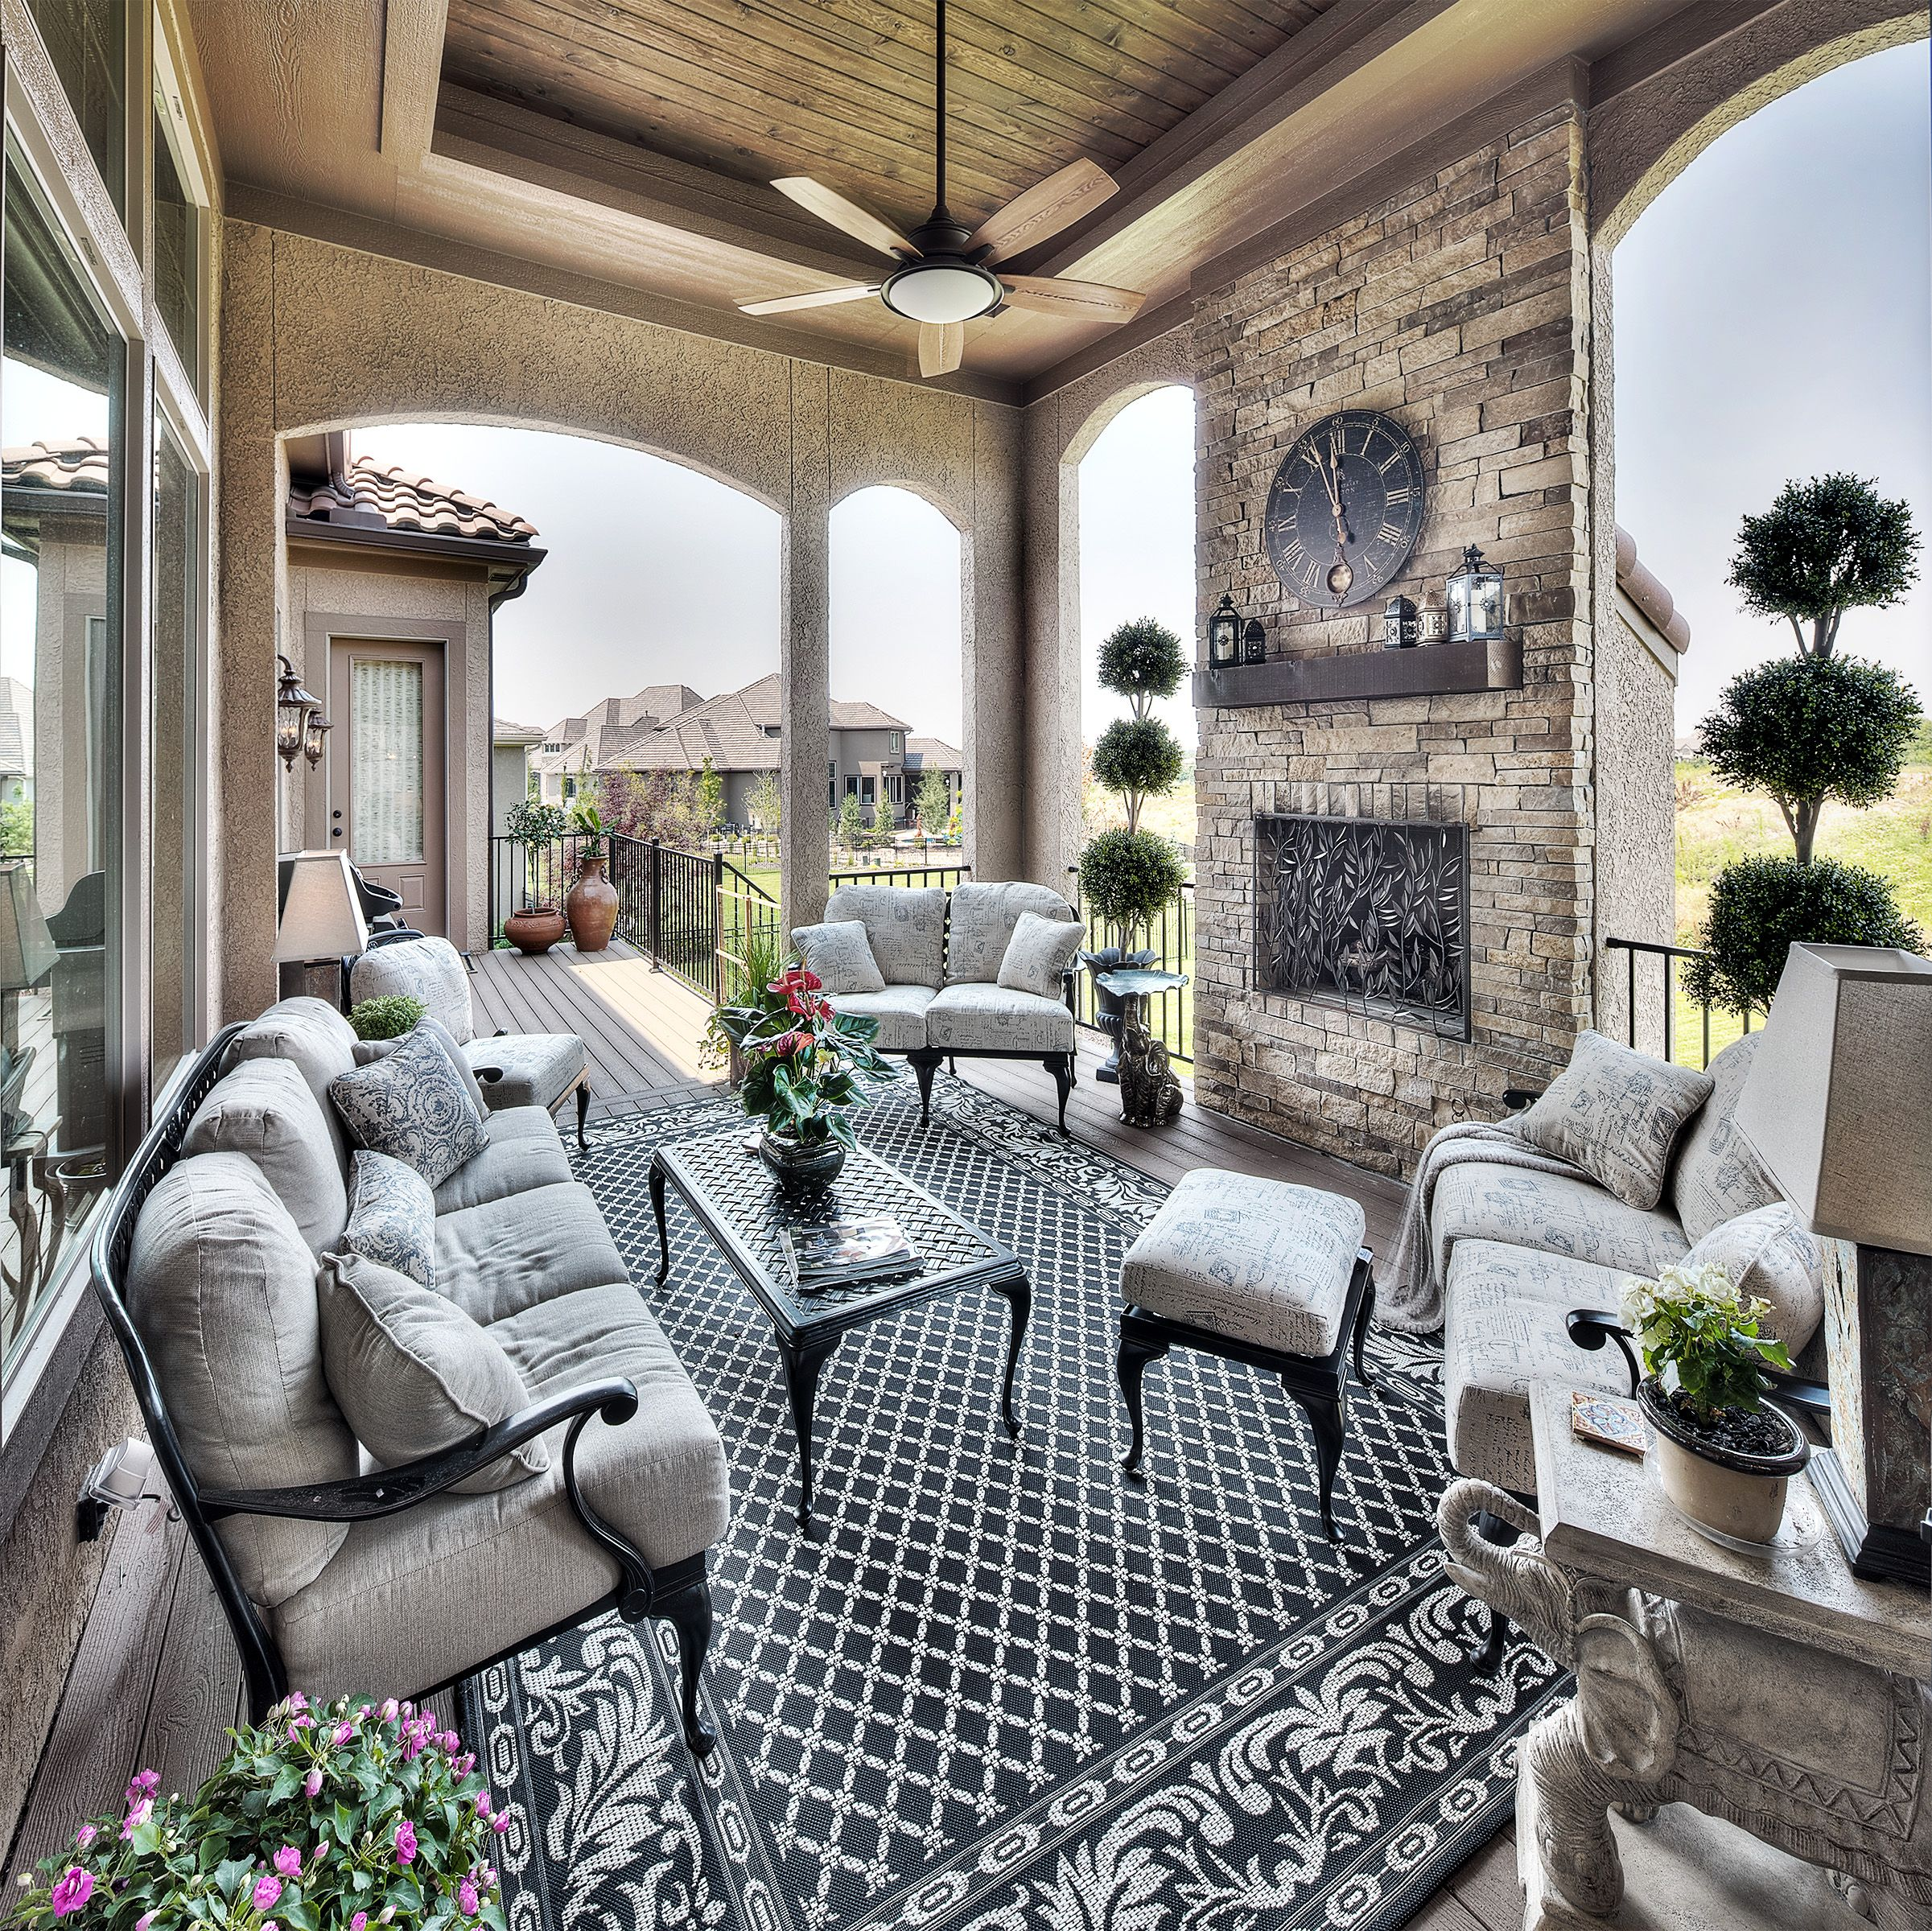 Home Entertainment Spaces: Outdoor Living: Covered Lanai, Covered Porch, Vaulted